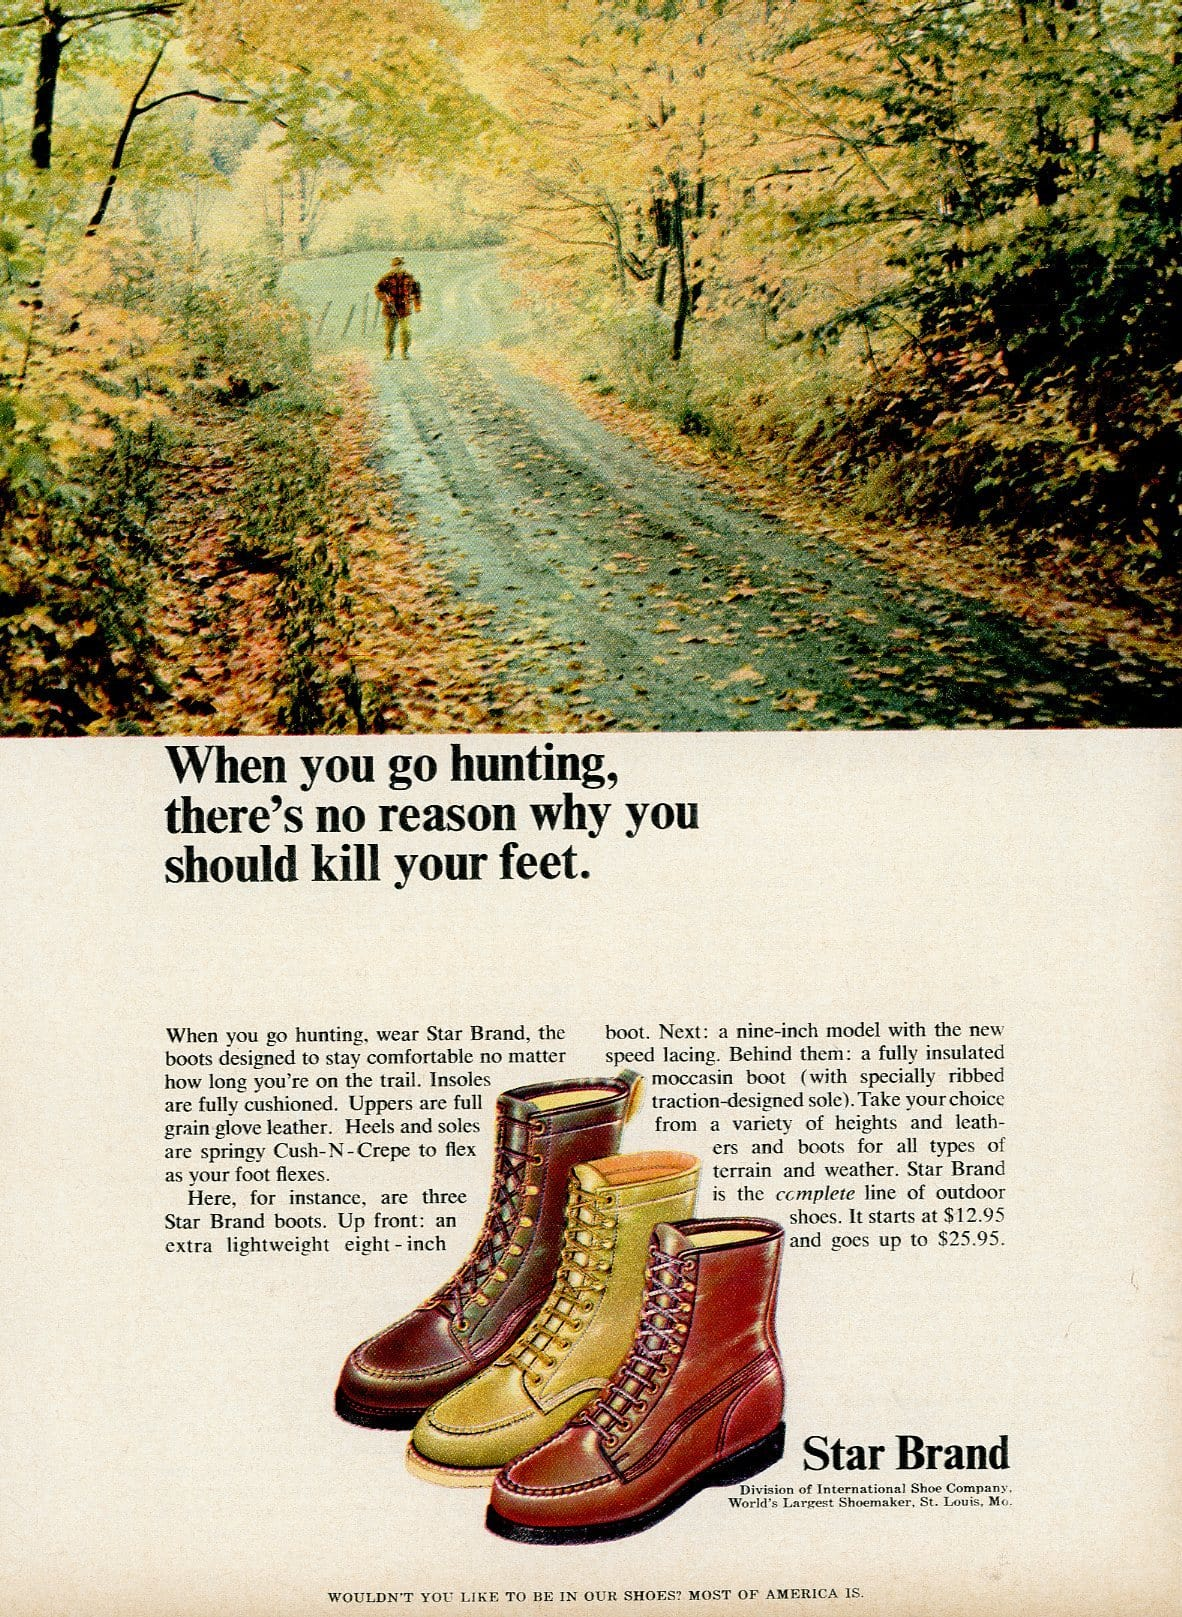 1960's Star Brand Boots Advertisement - Vintage Fashion Print Ad - Mad Men Advertising Era